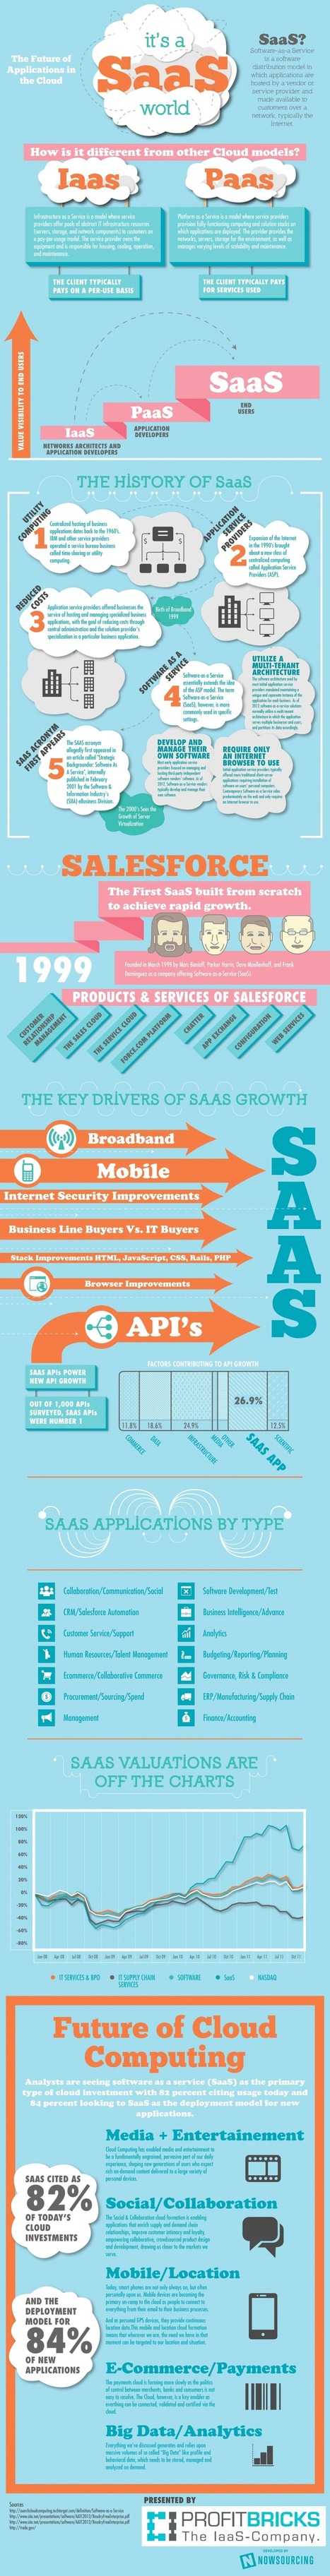 We Live in A SaaS World [Infographic] - Business 2 Community | Cloud | Scoop.it